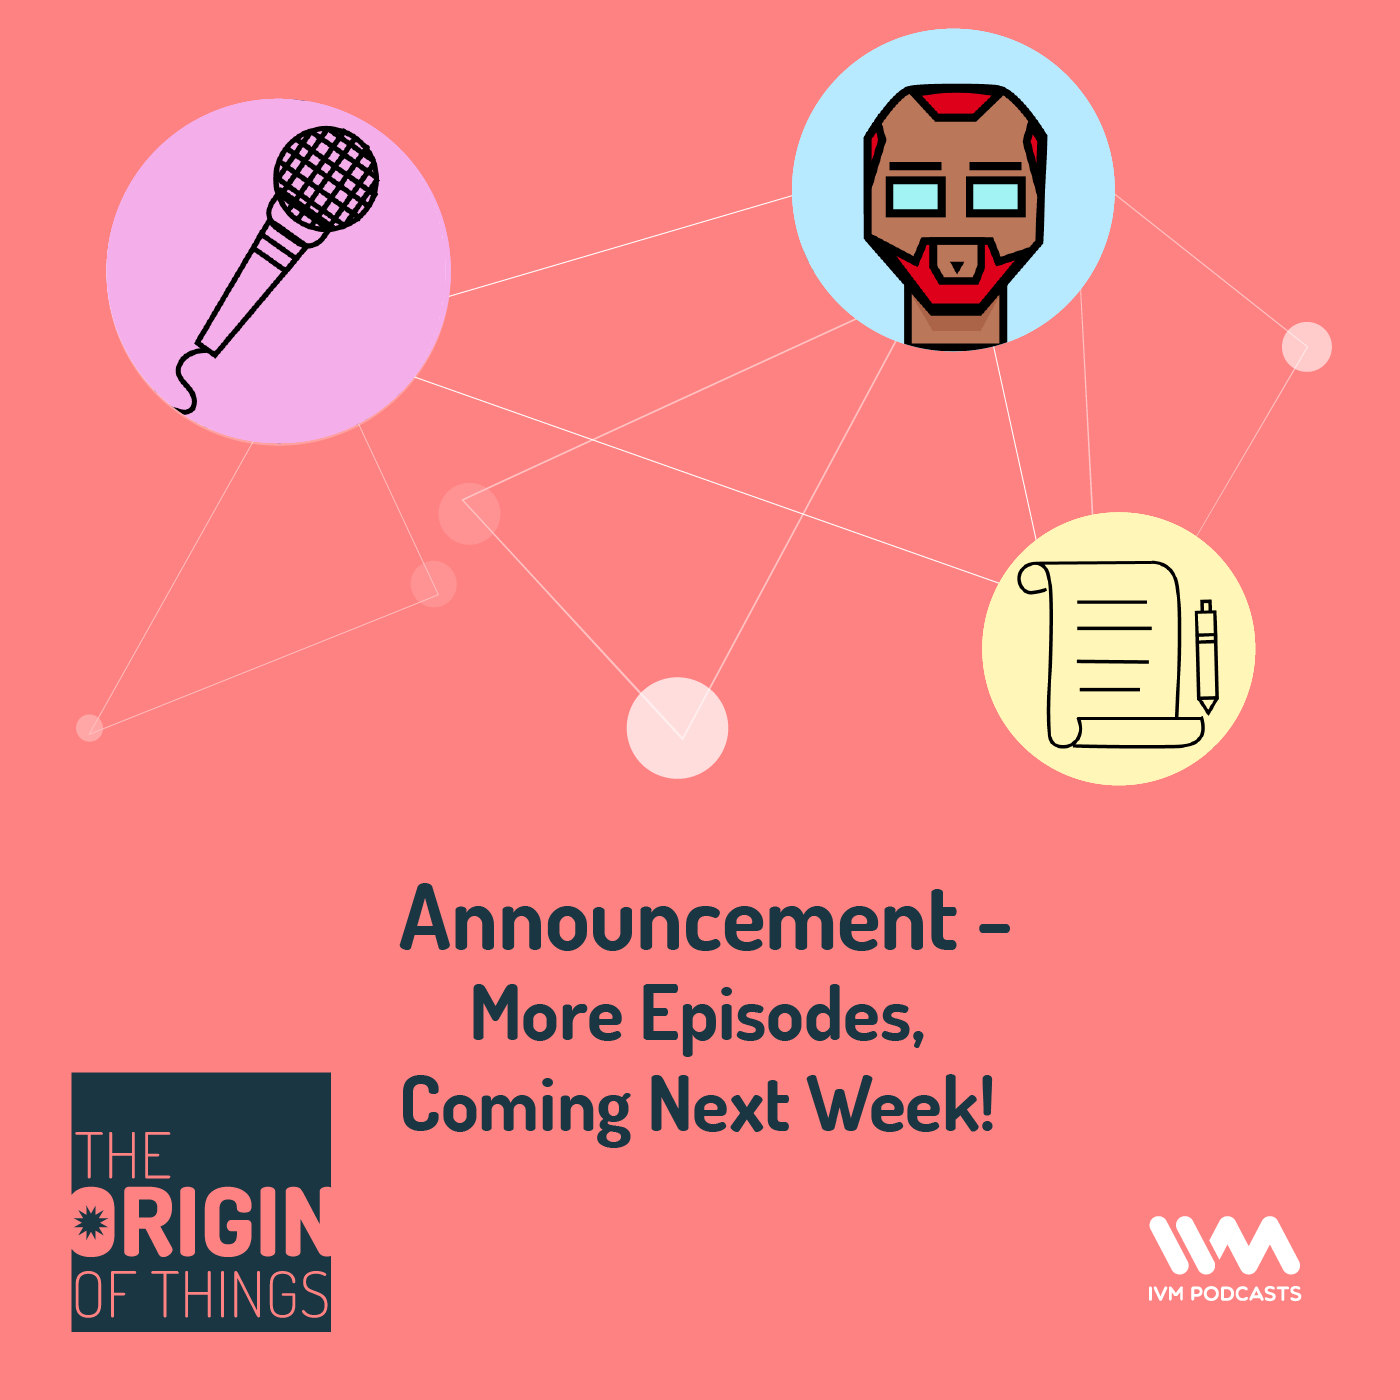 Announcement - More Episodes, Coming Next Week!